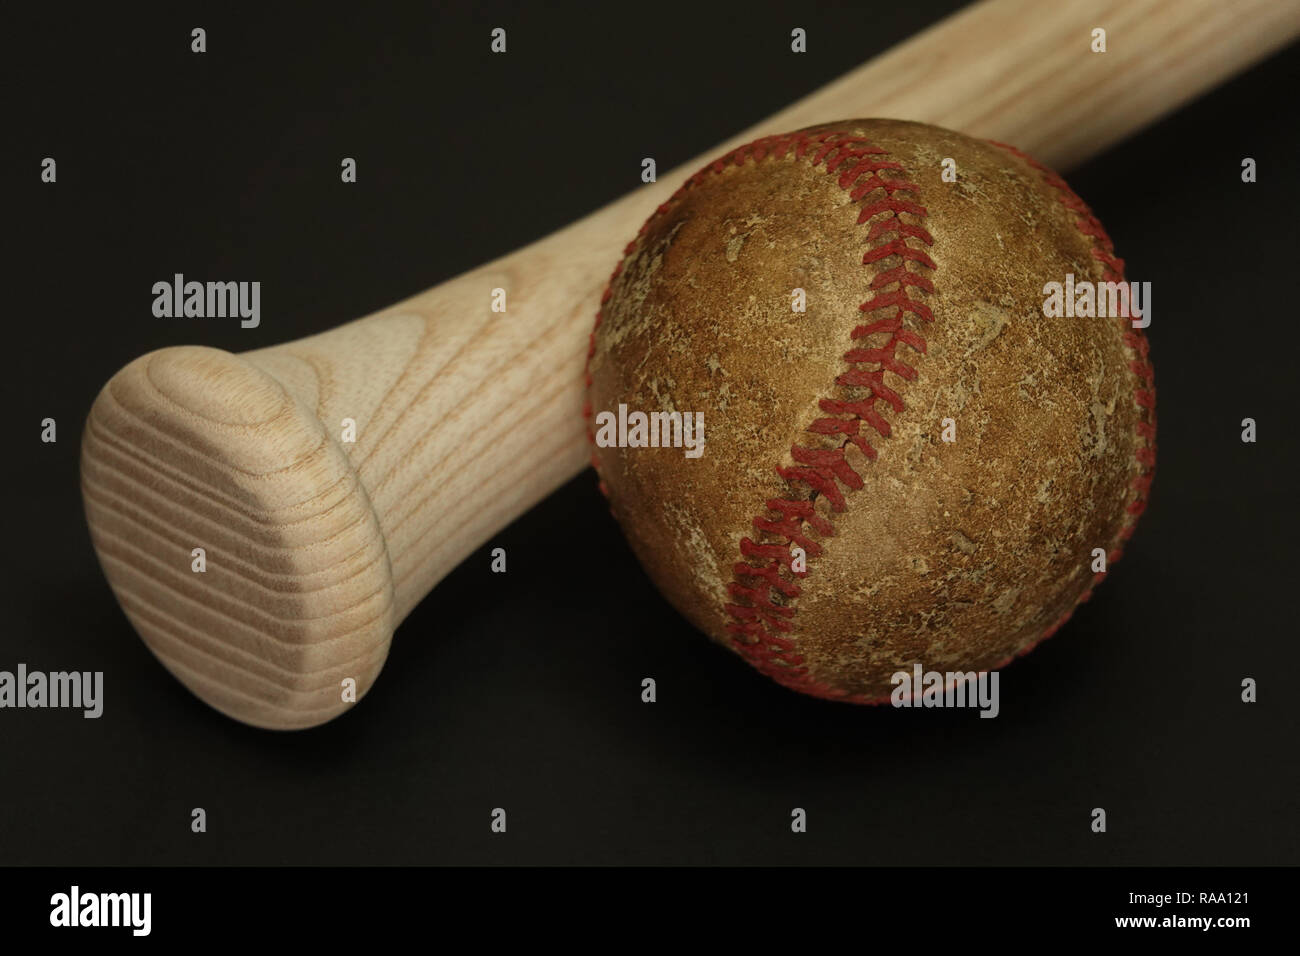 An old and well used baseball is shown next to a new, wood baseball bat, set against a black background. - Stock Image